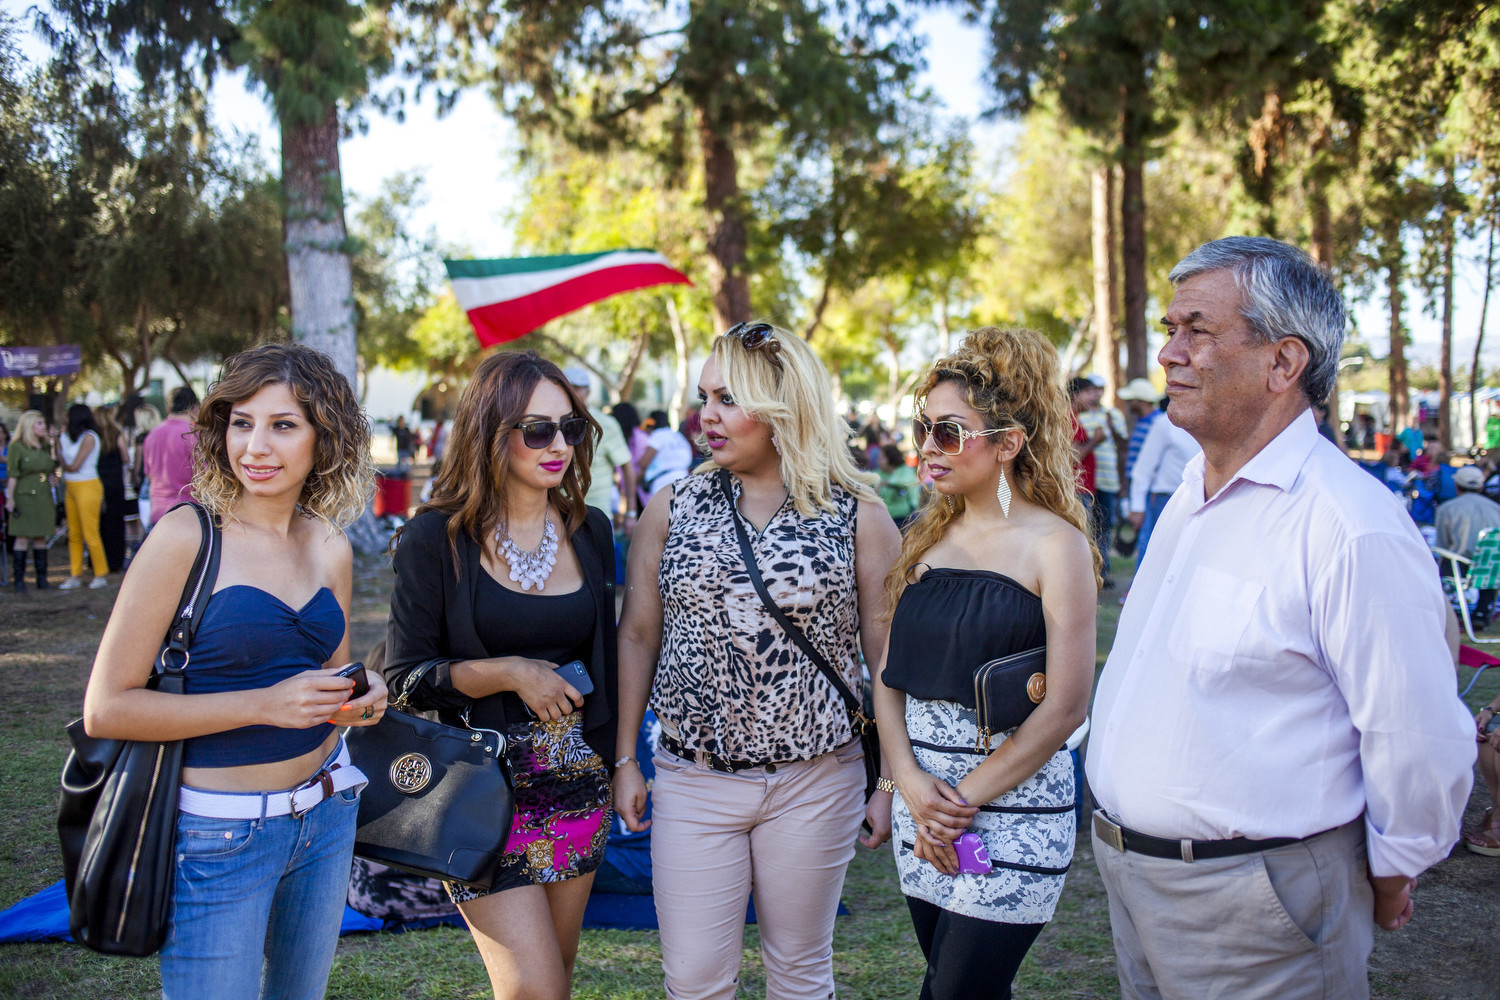 In Los Angeles, Iranian-Americans celebrate the fall festival of Mehregan, which honors friendship and love.